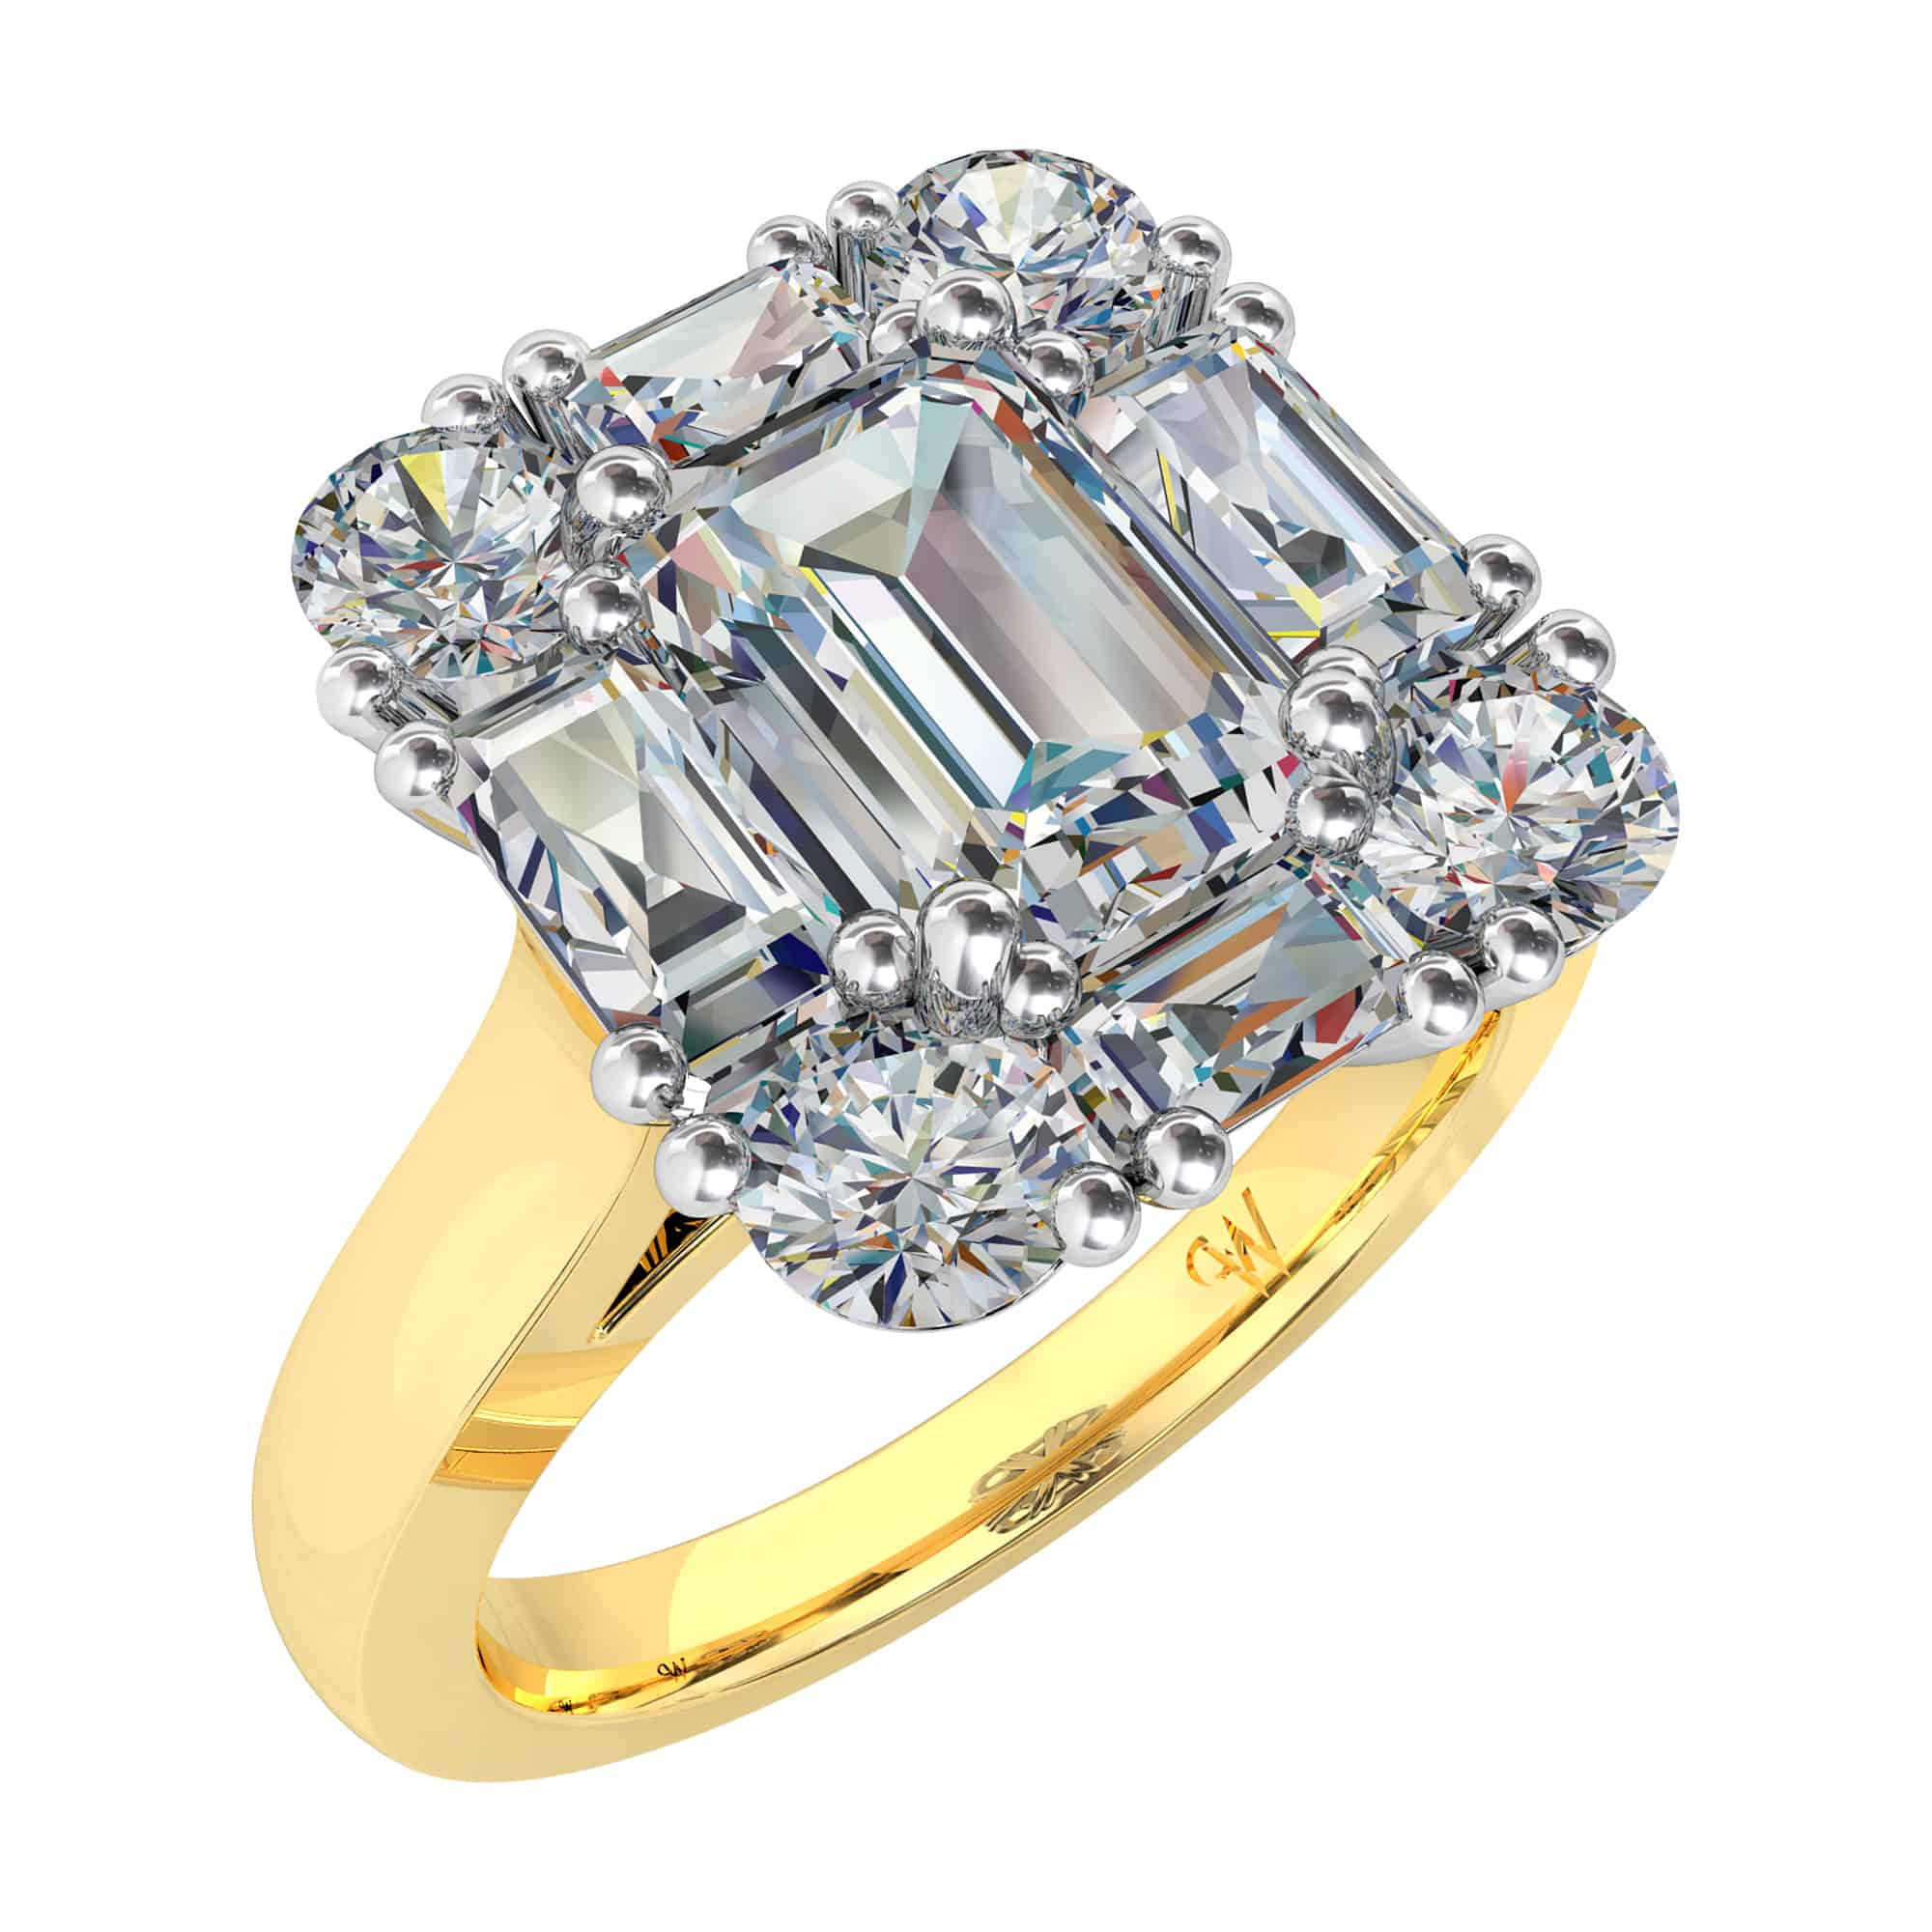 jewellery ring rocks asscher halo london cut products rings diamond